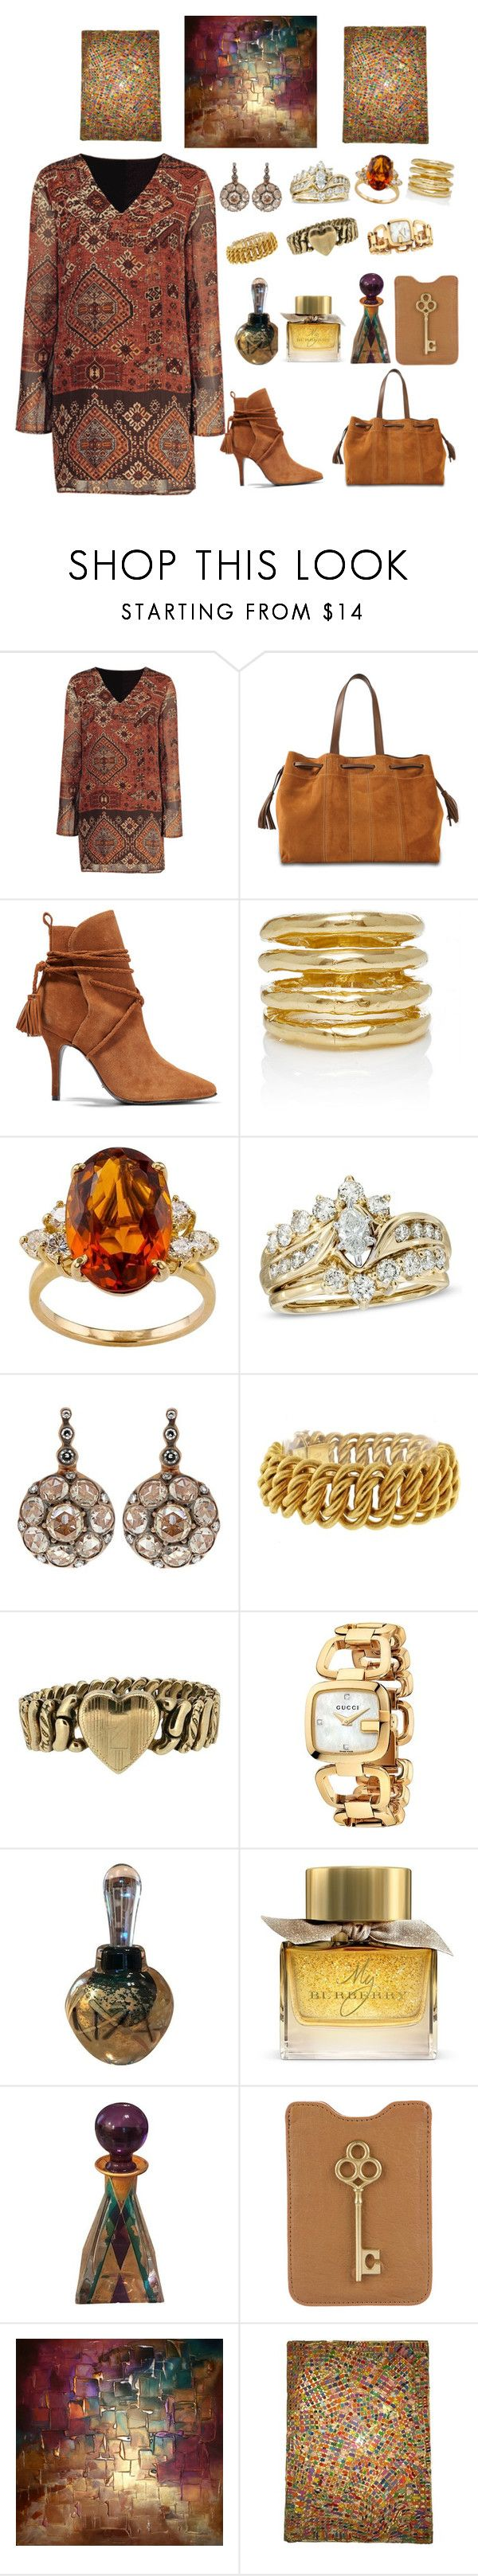 """""""Untitled #1630"""" by dkerbyg ❤ liked on Polyvore featuring Gérard Darel, Schutz, Wasson, Selim Mouzannar, Buccellati, Gucci, Burberry and Jonathan Adler"""